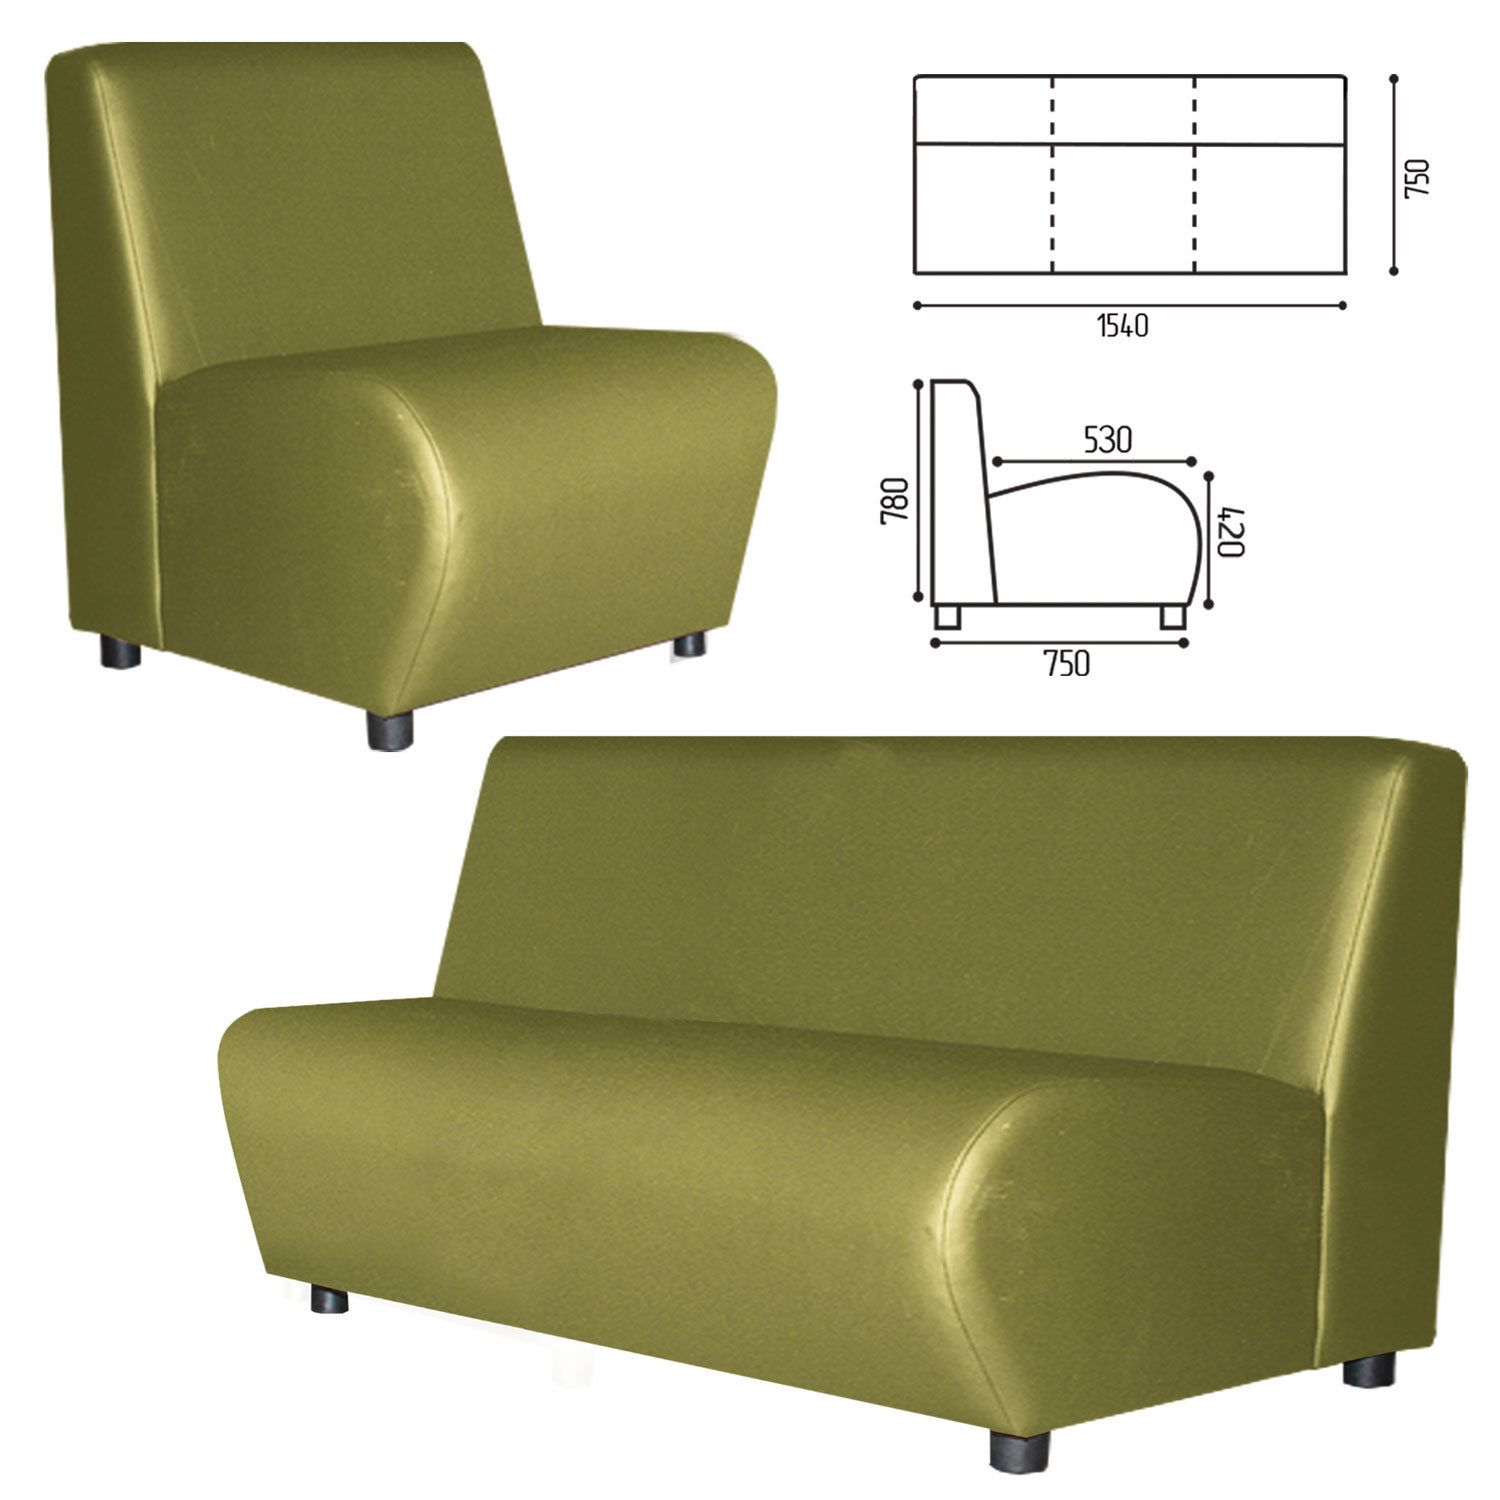 """GARTLEX / Sofa soft three-seater """"Cloud"""", """"V-600"""", 1540x750x780 mm, without armrests, eco-leather, light green"""